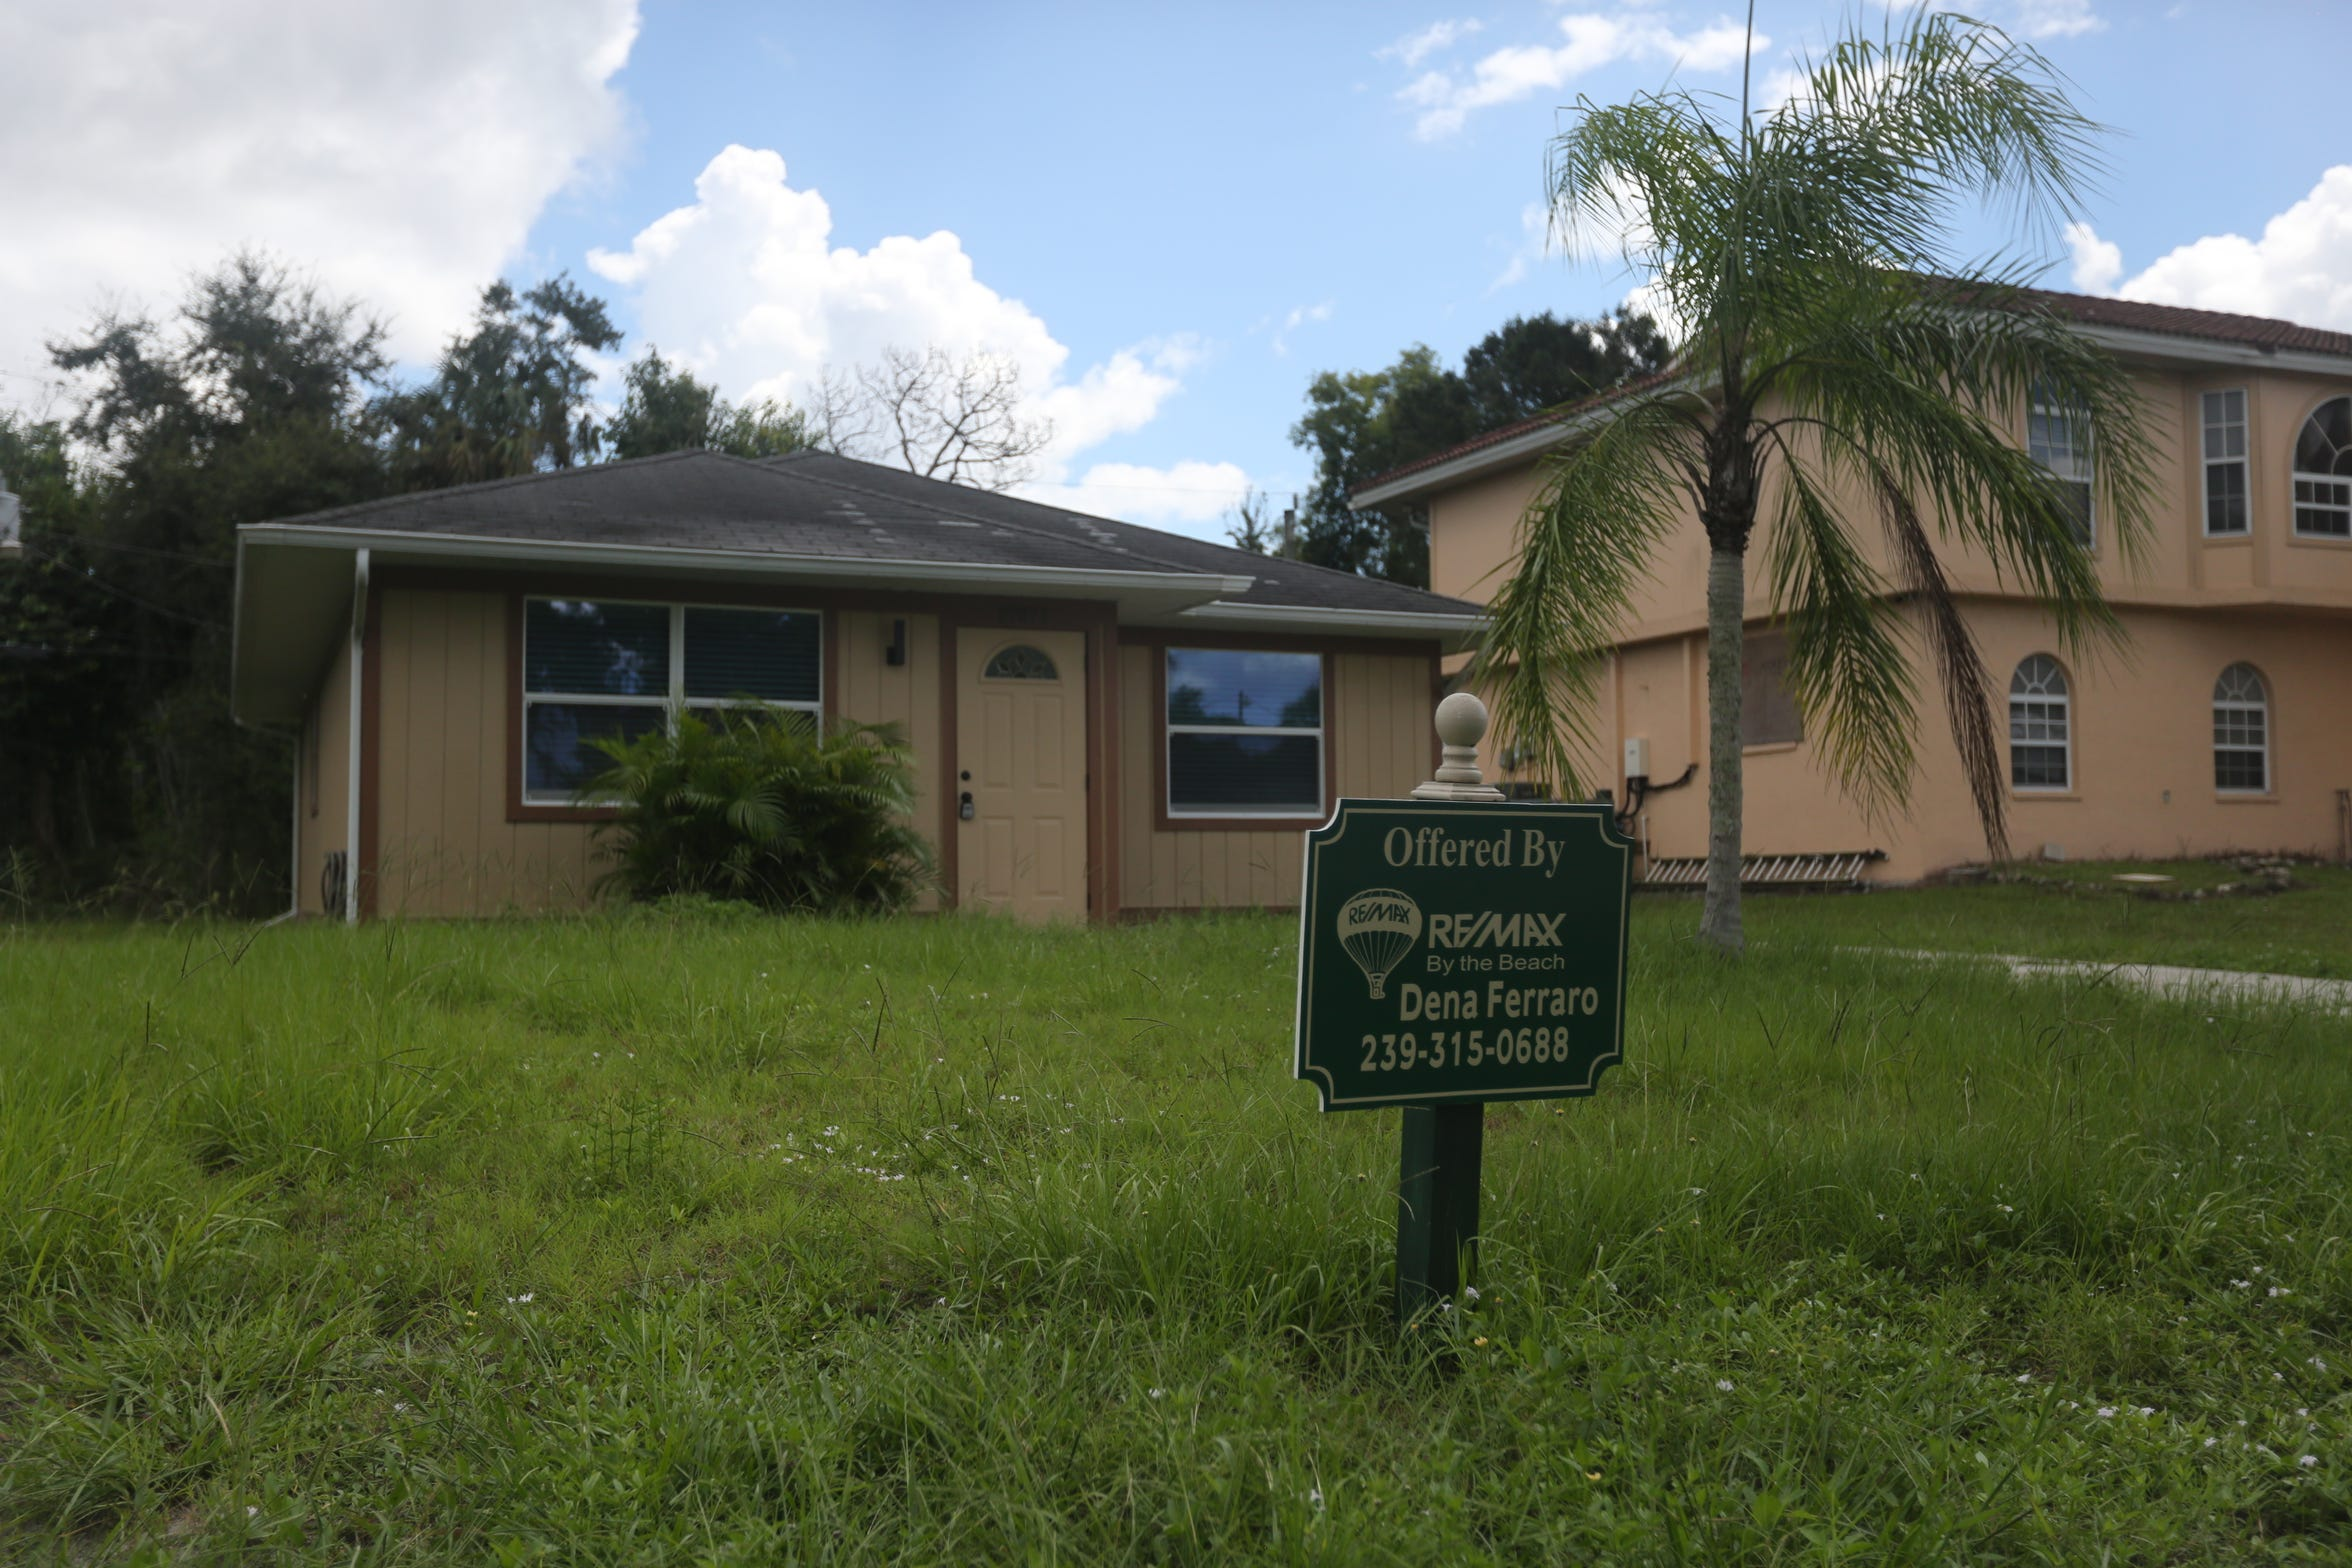 The owner of a house on Quinn Street that flooded during Hurricane Irma is offering the newly renovated home for sale.